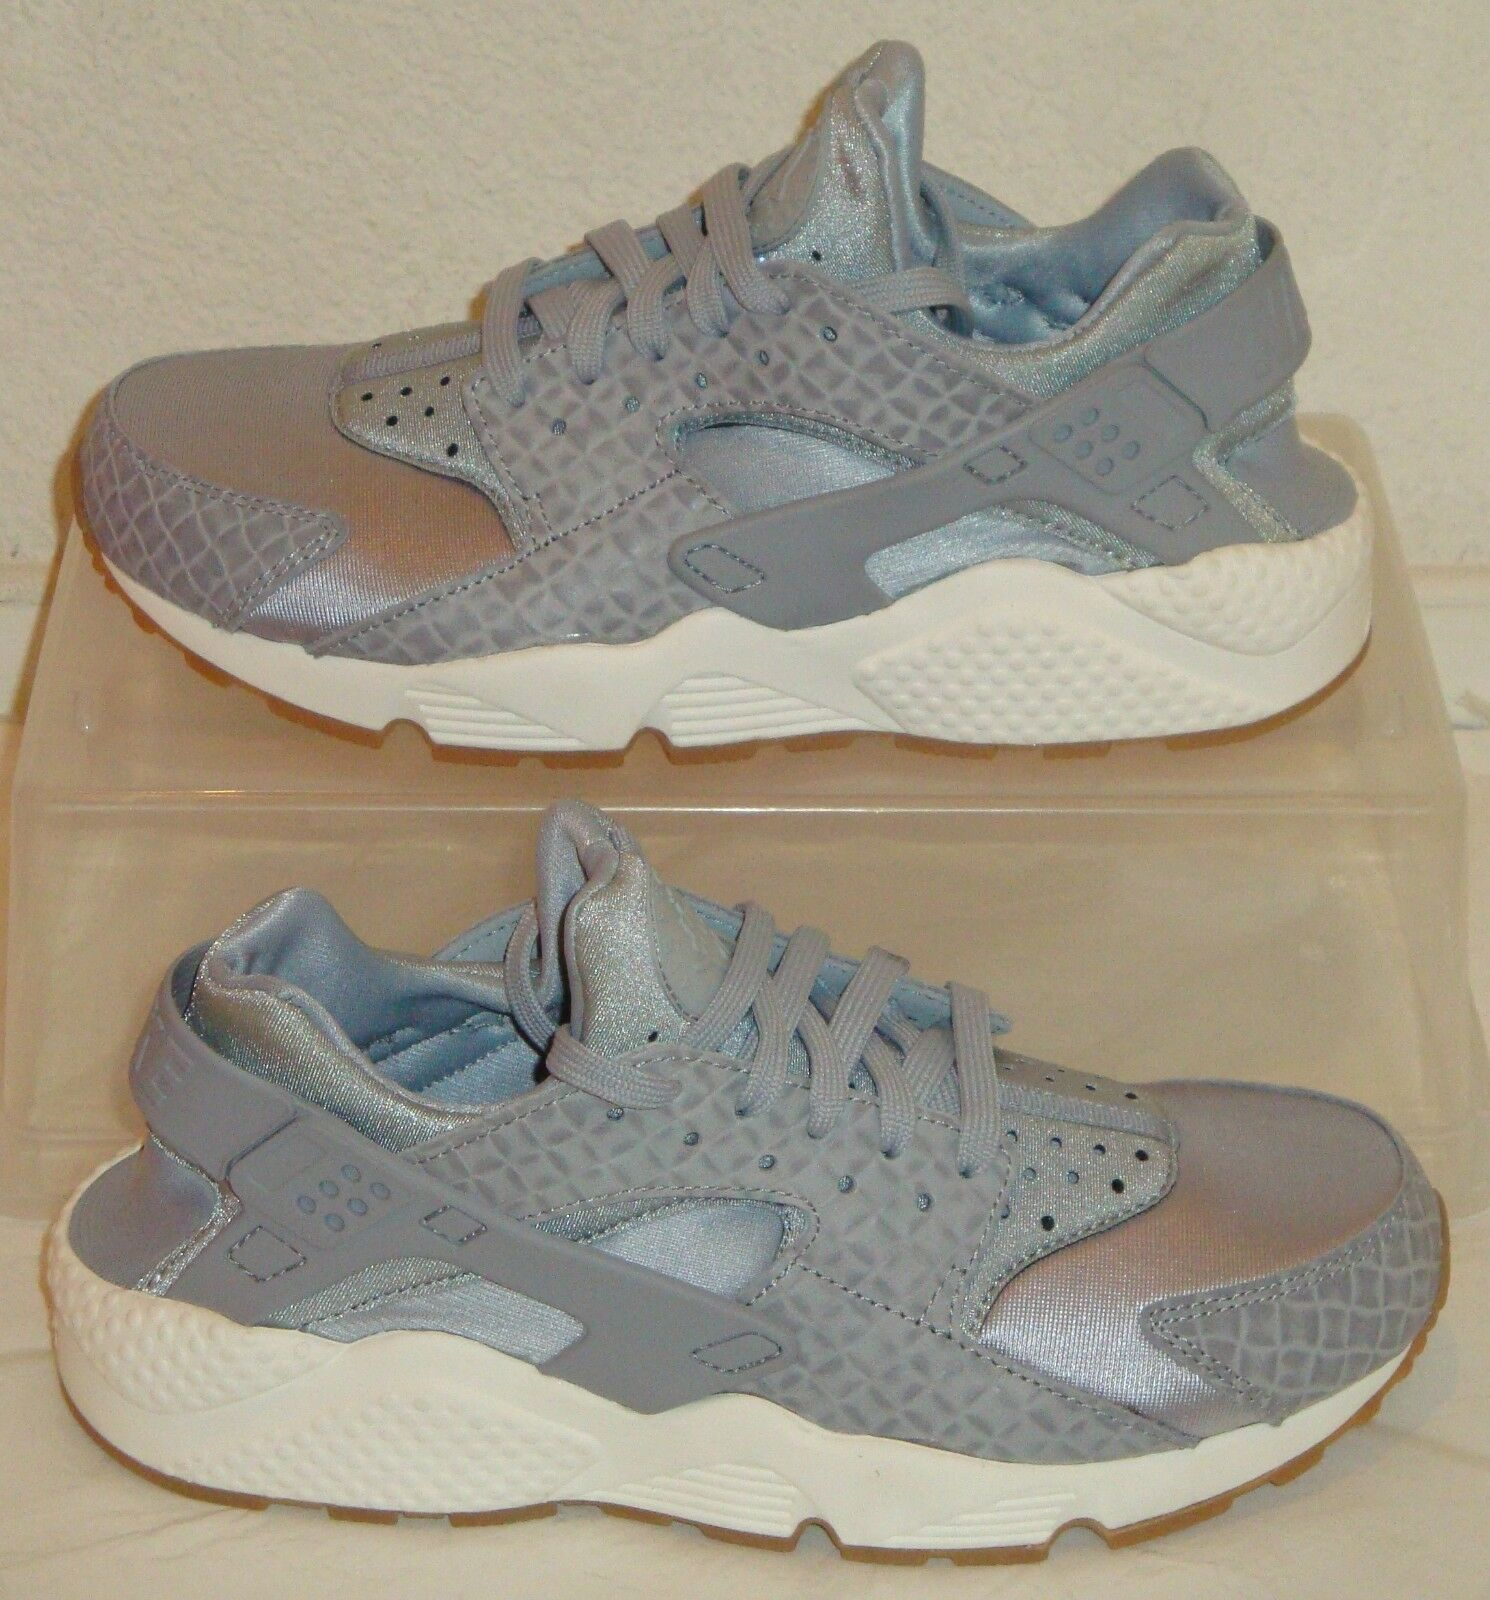 Nike Air Huarache Run Grey Sail Womens US Size 7.5